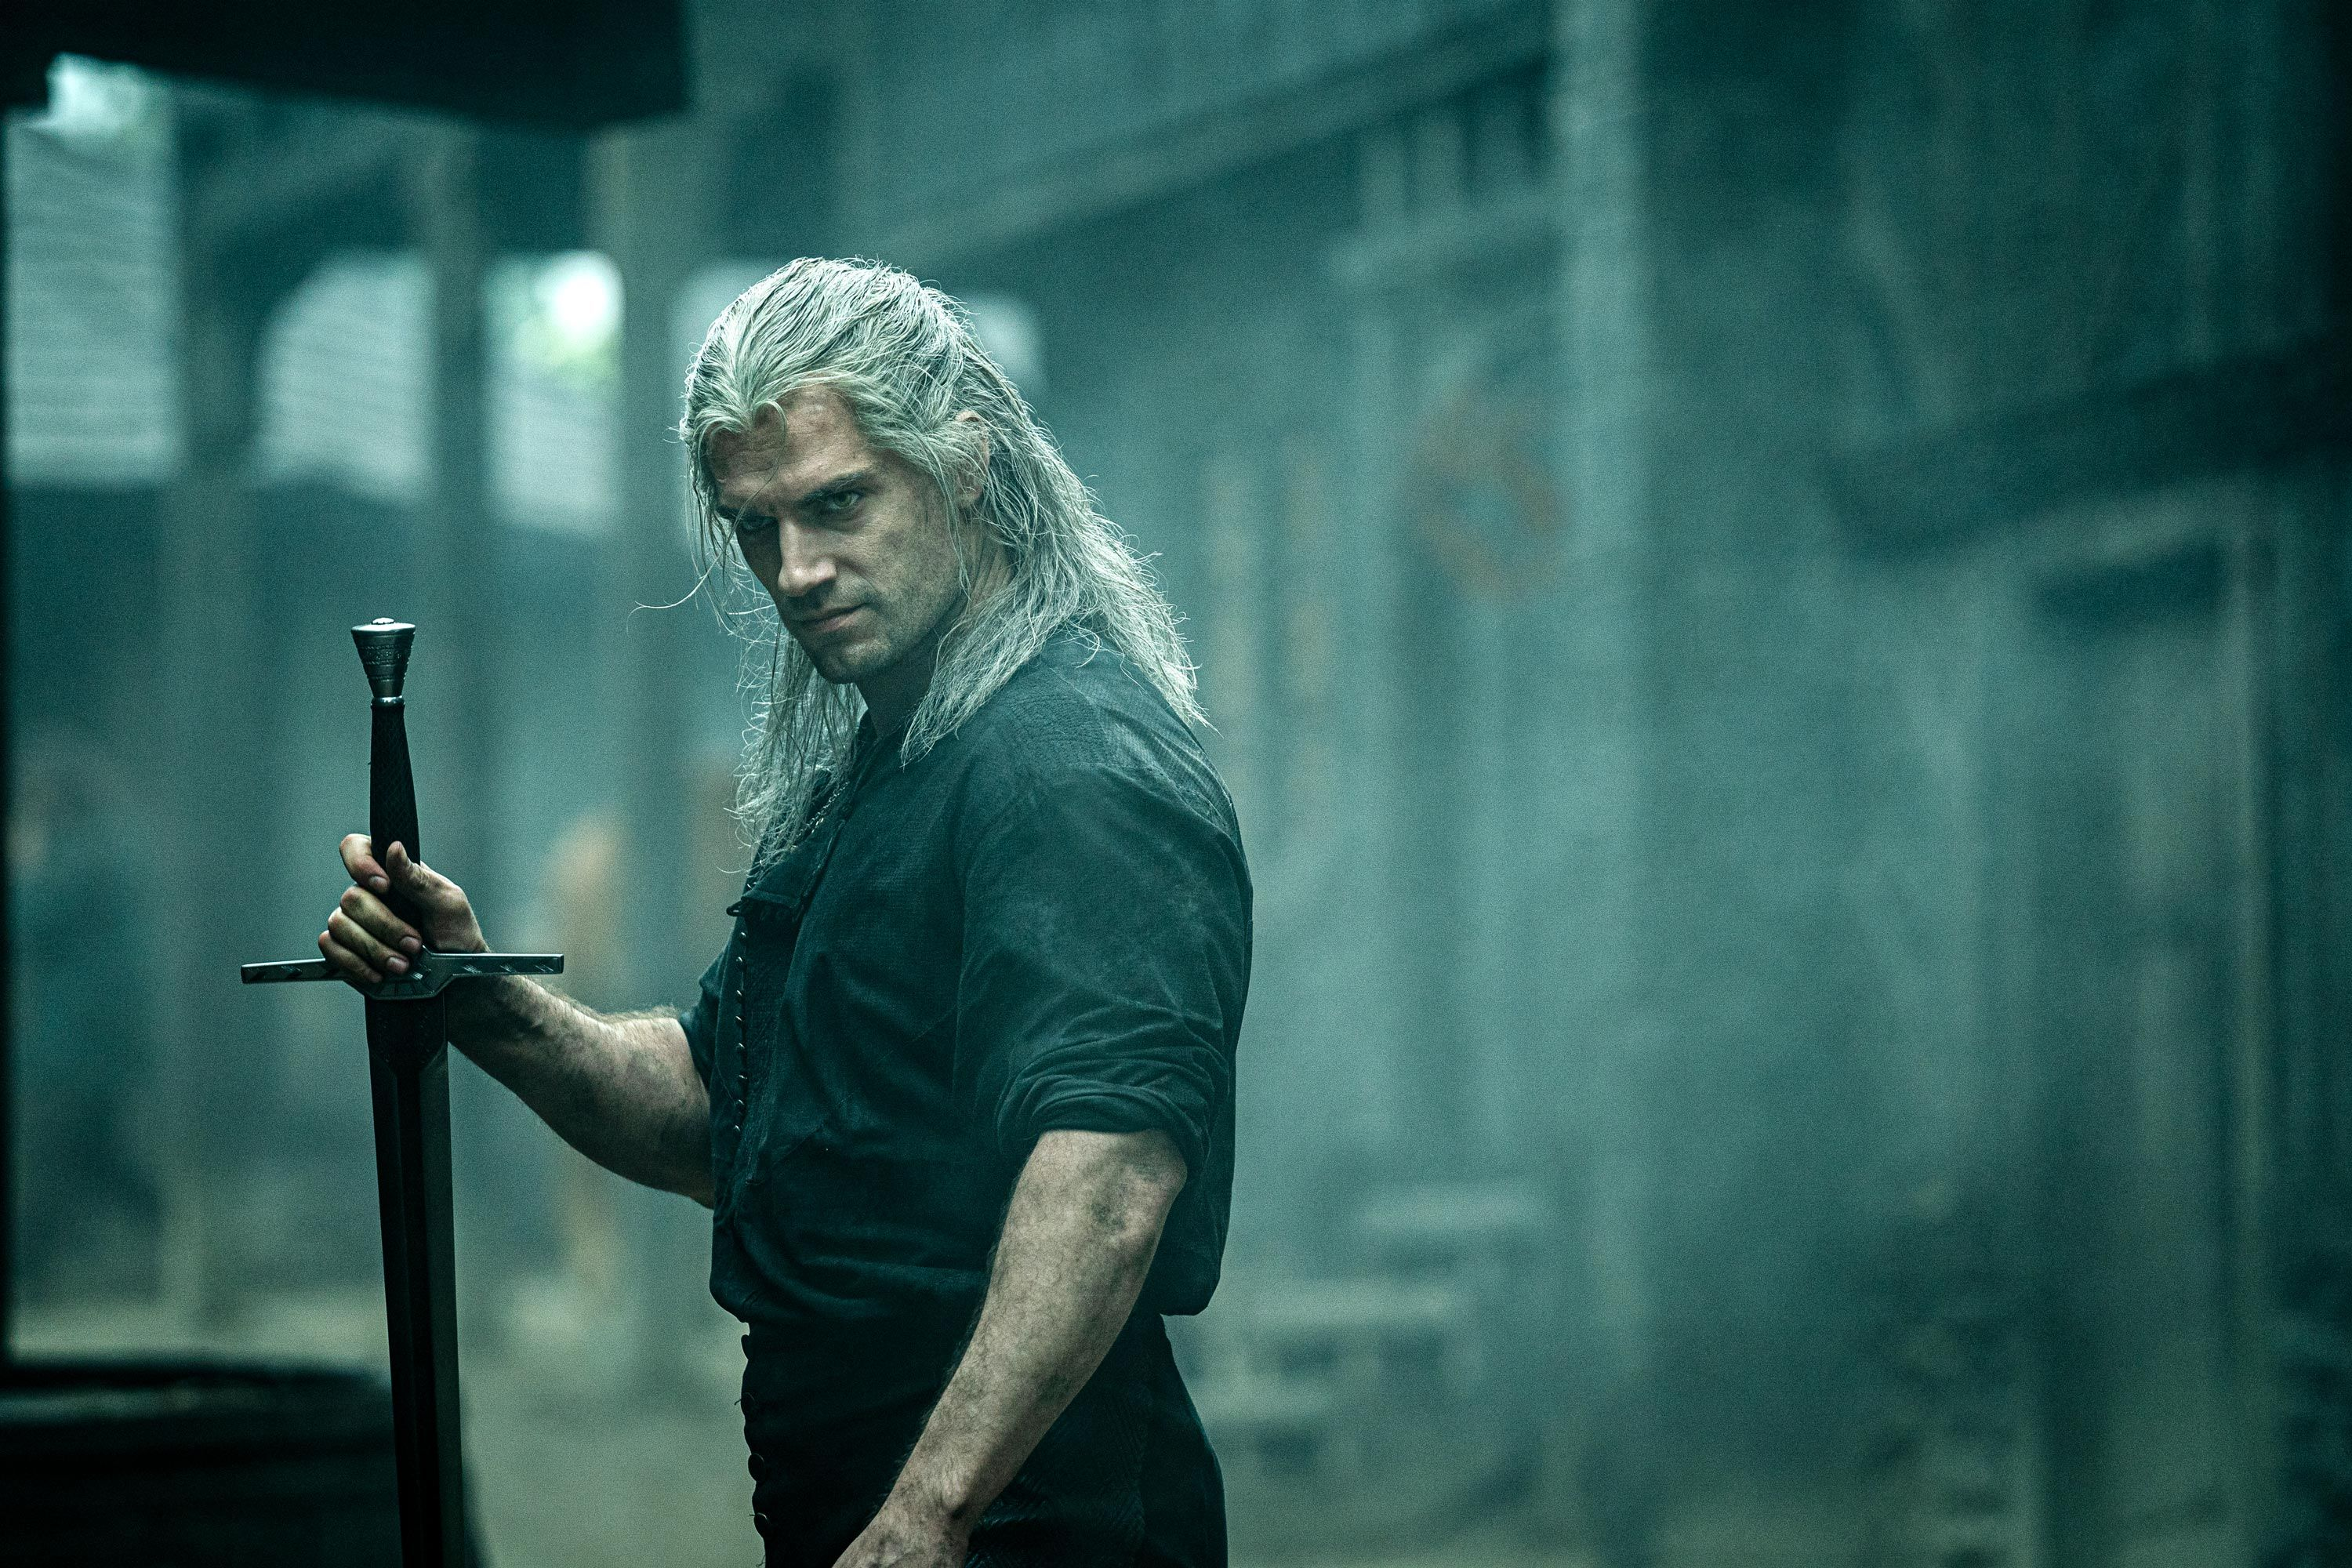 Netflix says The Witcher season 1 is breaking history with 76 million views